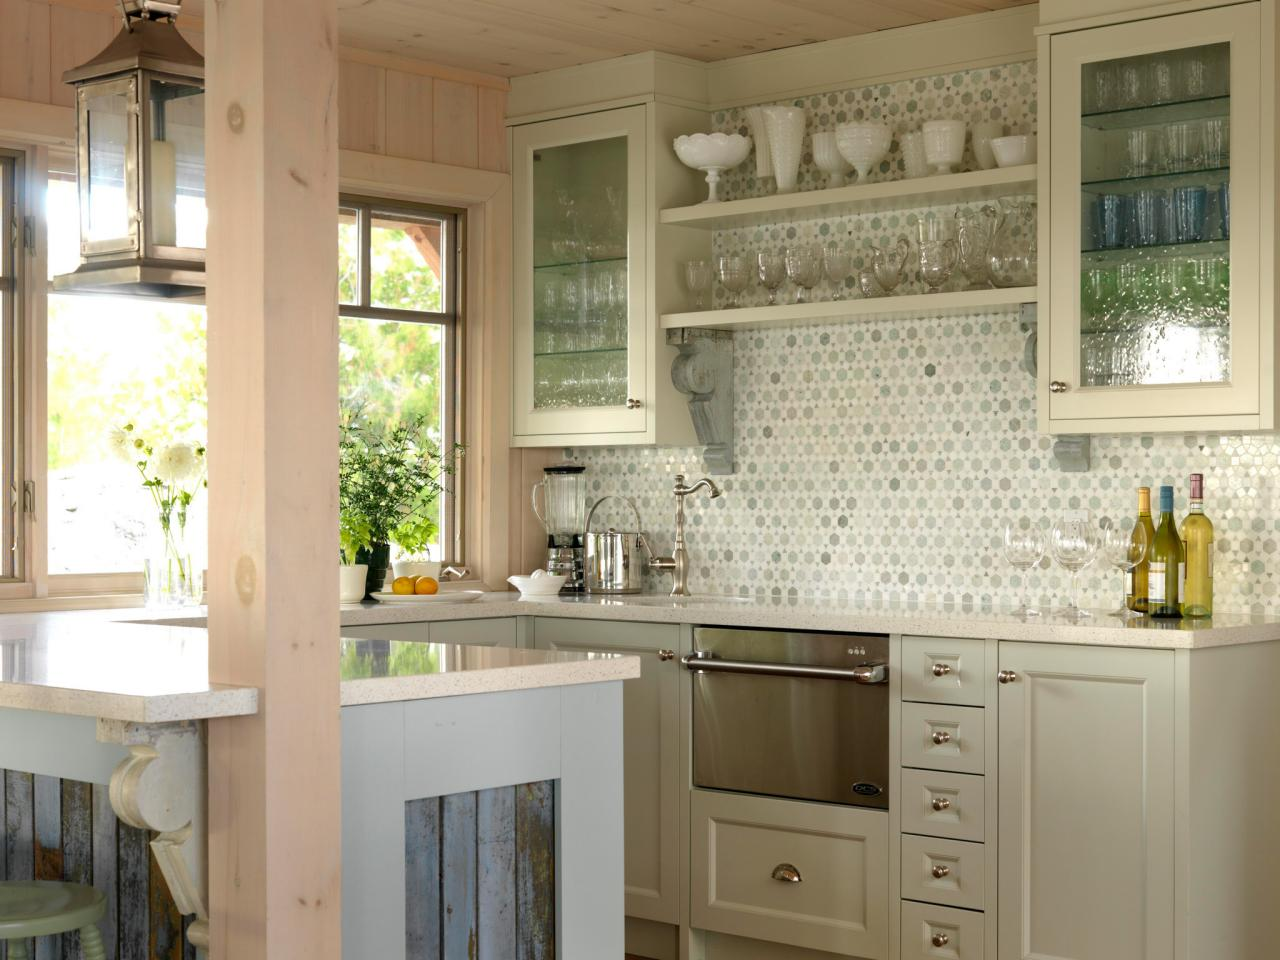 Gl Kitchen Cabinet Doors: Pictures & Ideas From HGTV | HGTV on frosted glass cabinets, frosted panels kitchen, opaque glass for cabinets, frosted kitchen drawers, frosted kitchen windows, frosted kitchen glass, frosted kitchen doors, upper bathroom cabinets, frosted pane wall cabinet,